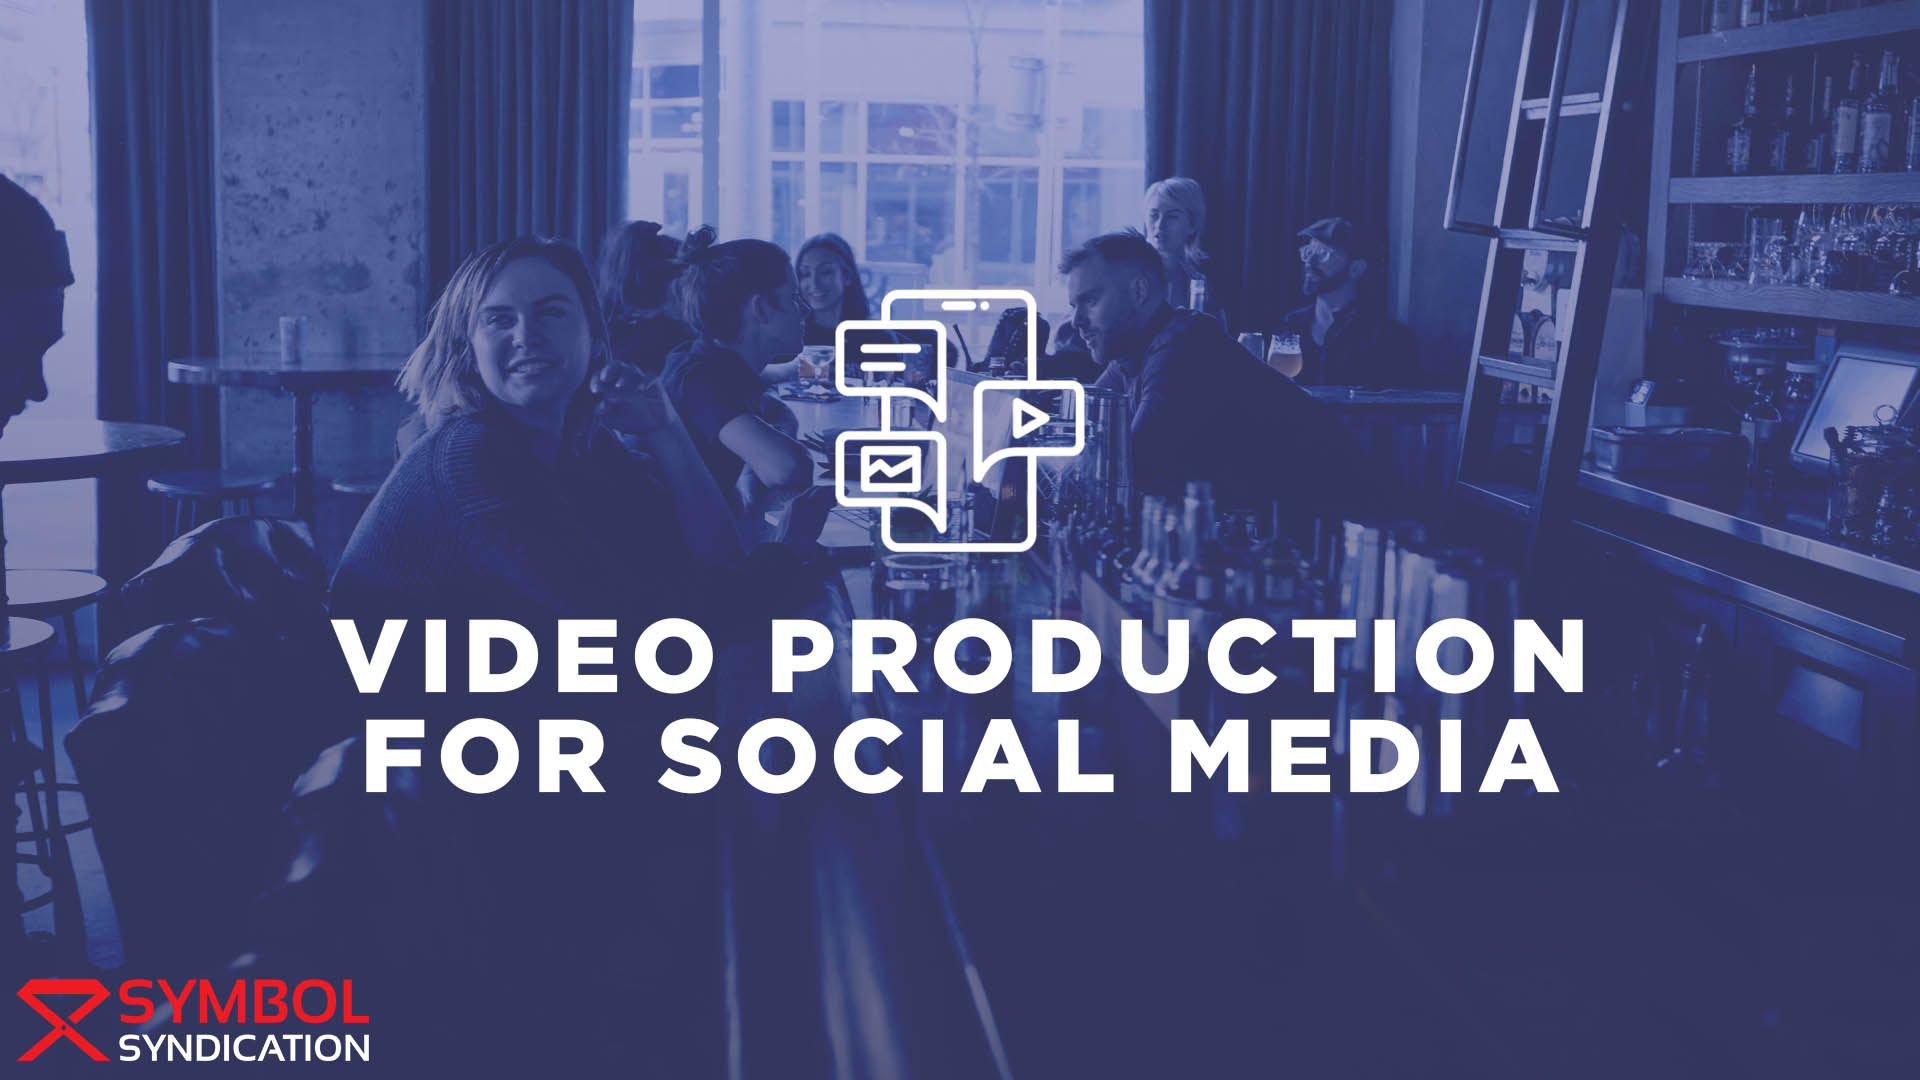 Video production for social media